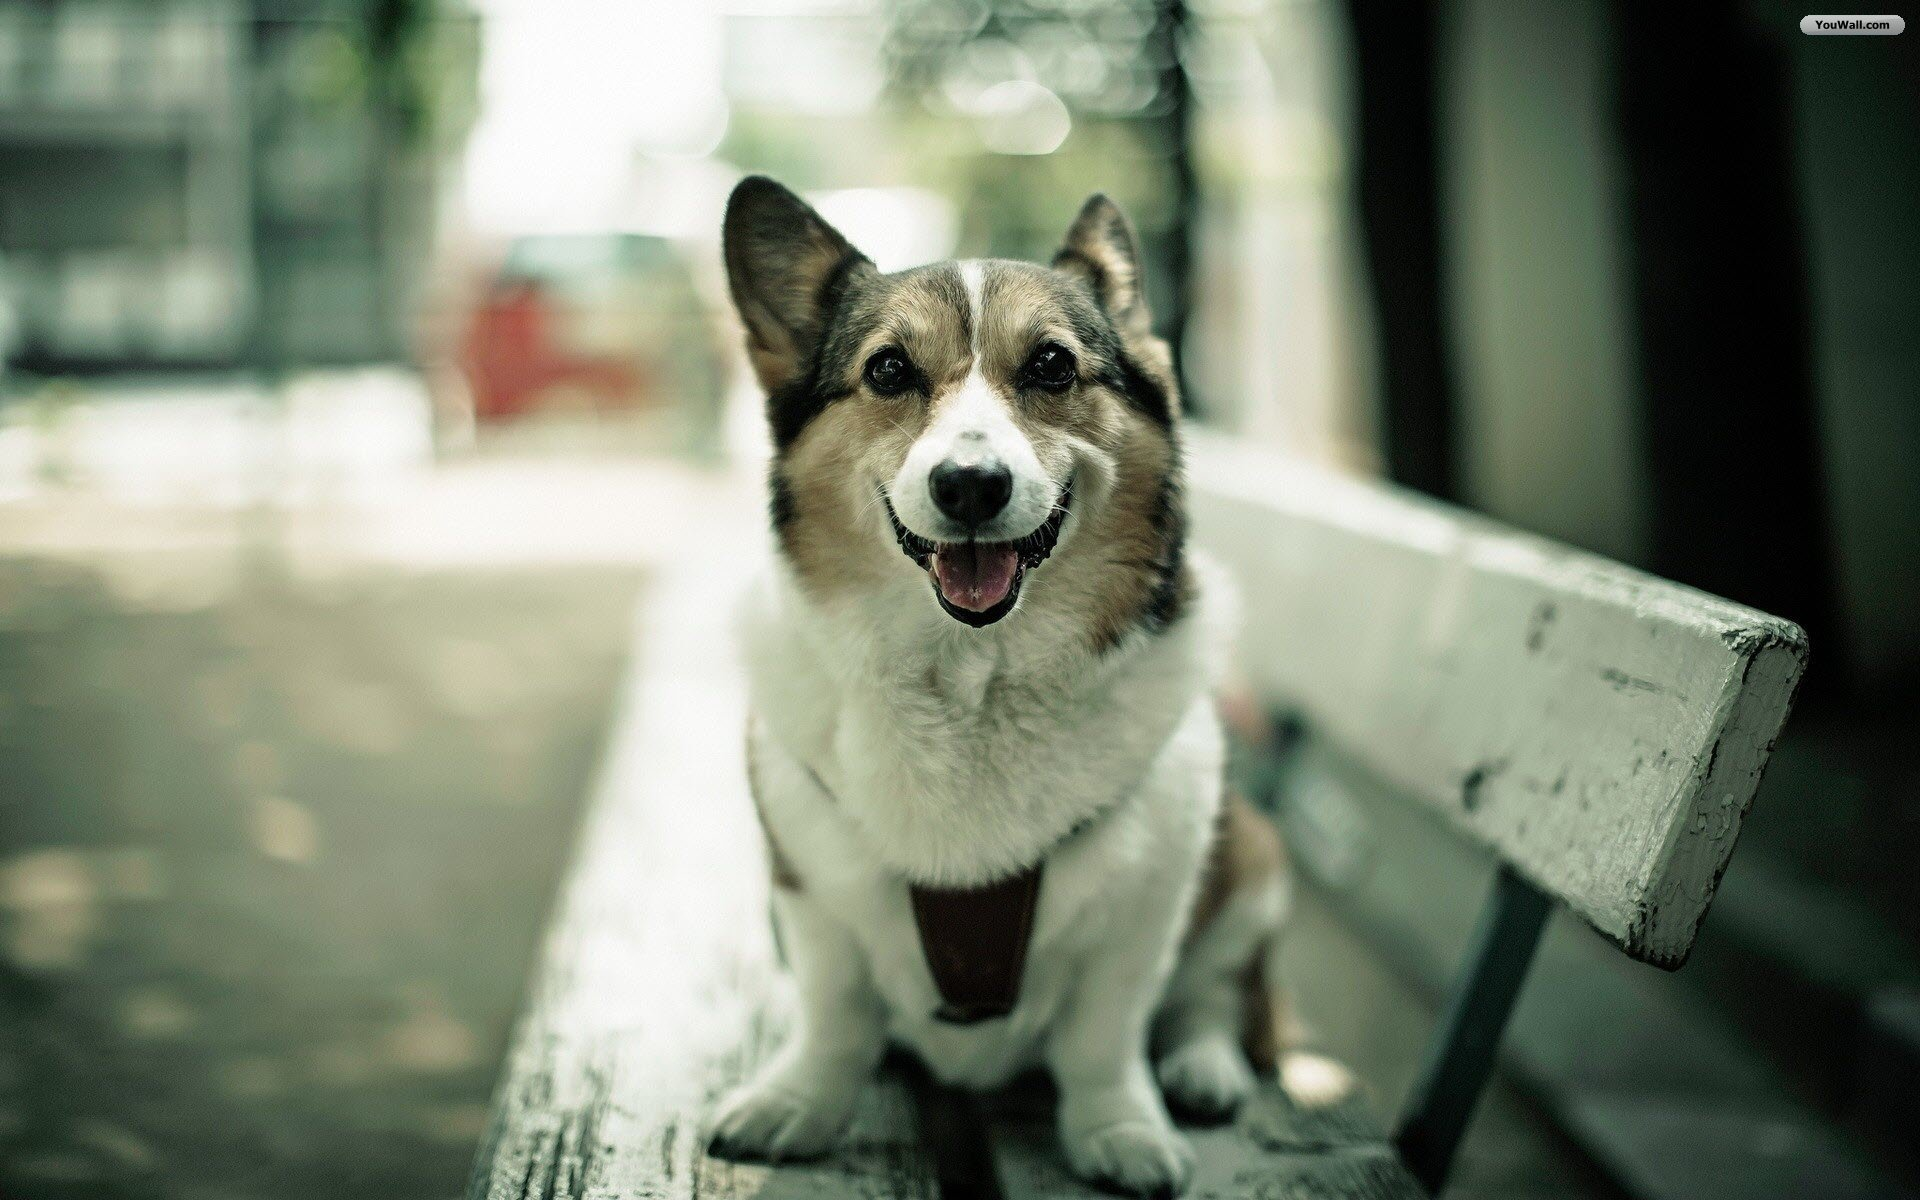 cute dog wallpaper, cute dog wallpapers for free download, gzhaixier